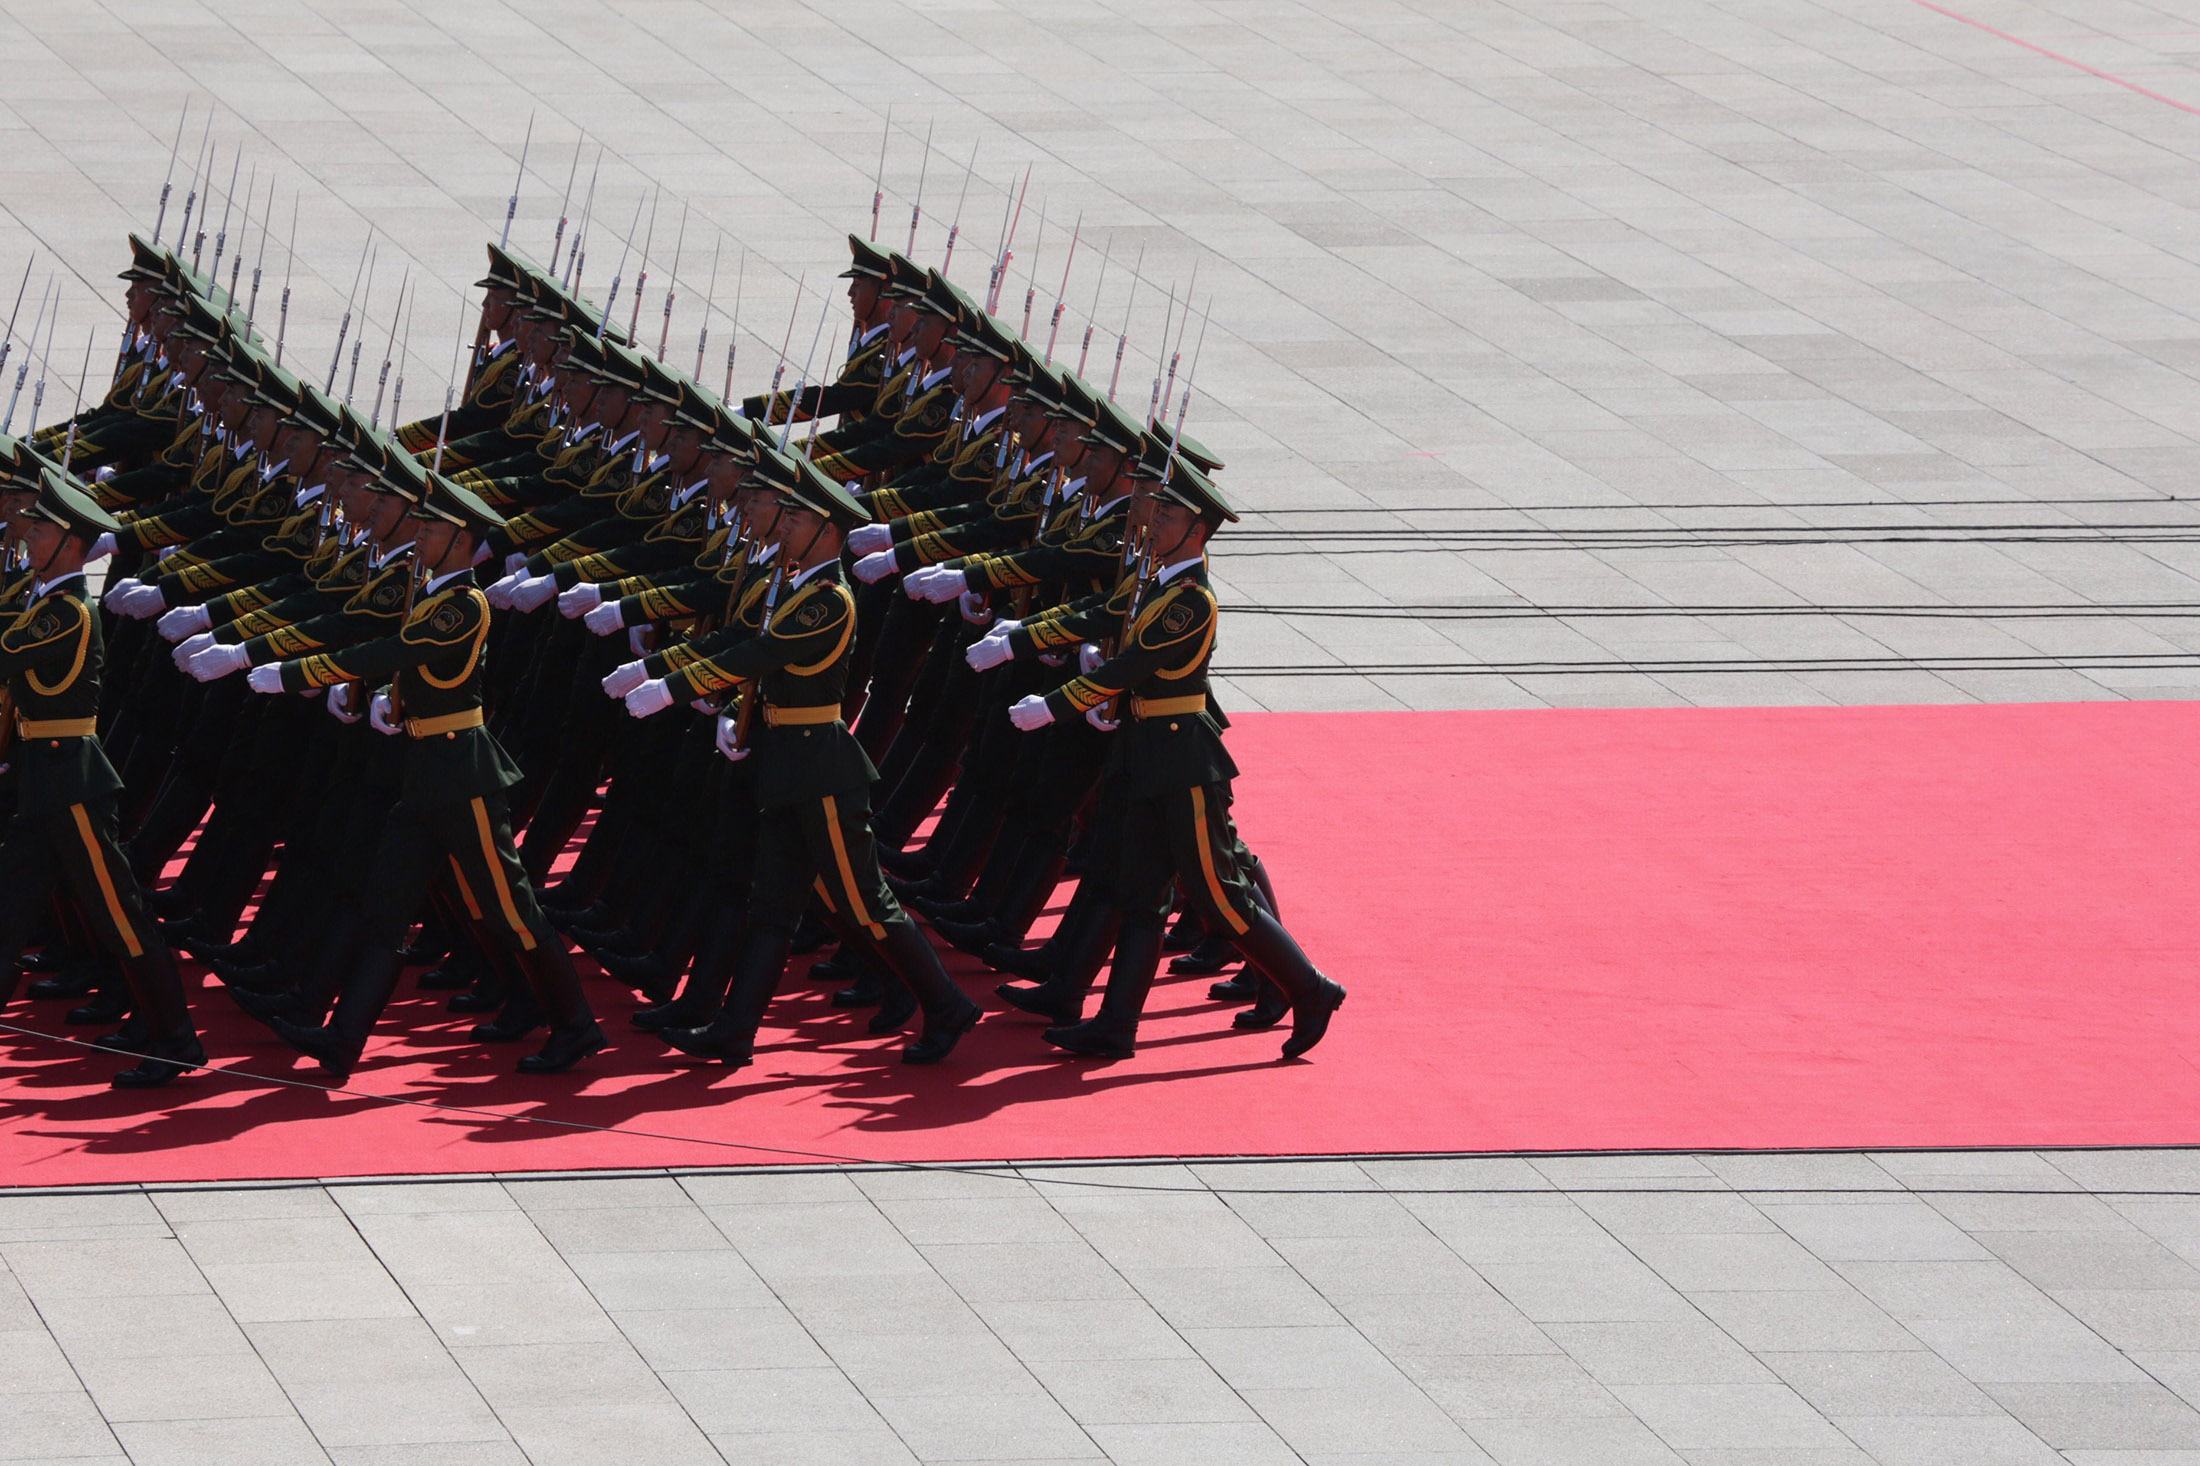 China unveils biggest army overhaul in decades to project power